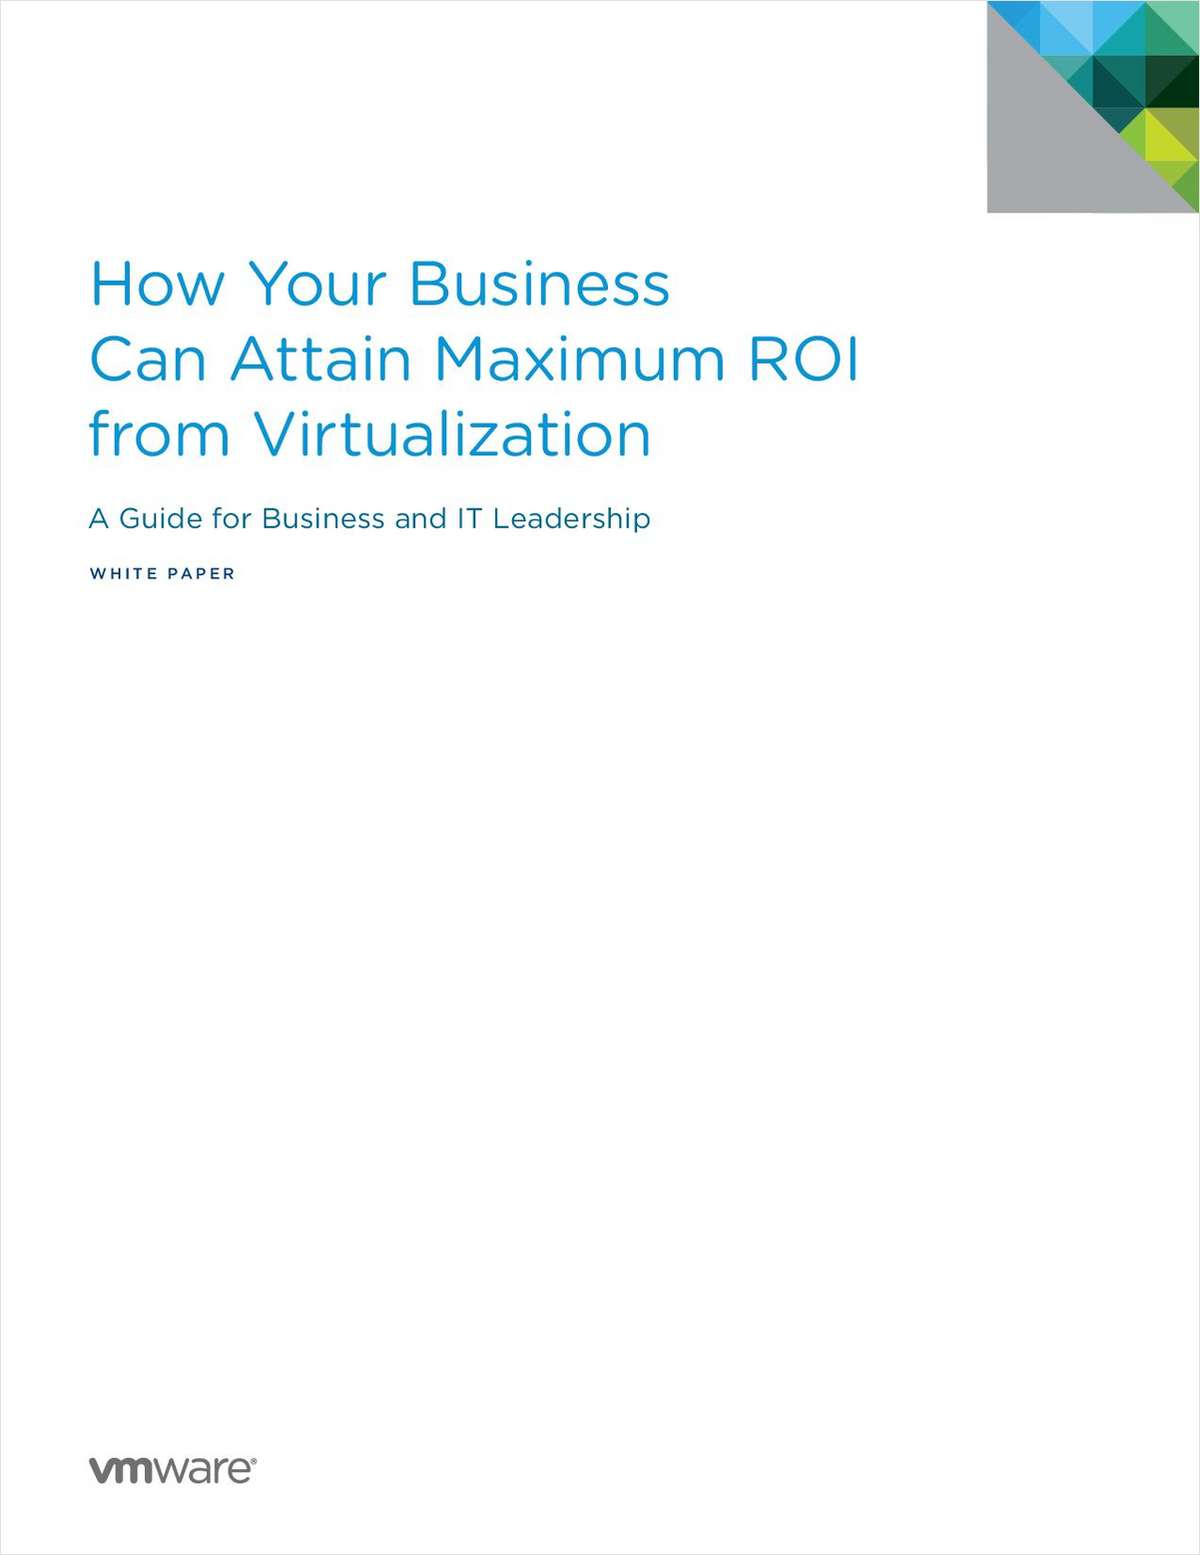 How Your Business Can Attain Maximum ROI from Virtualization